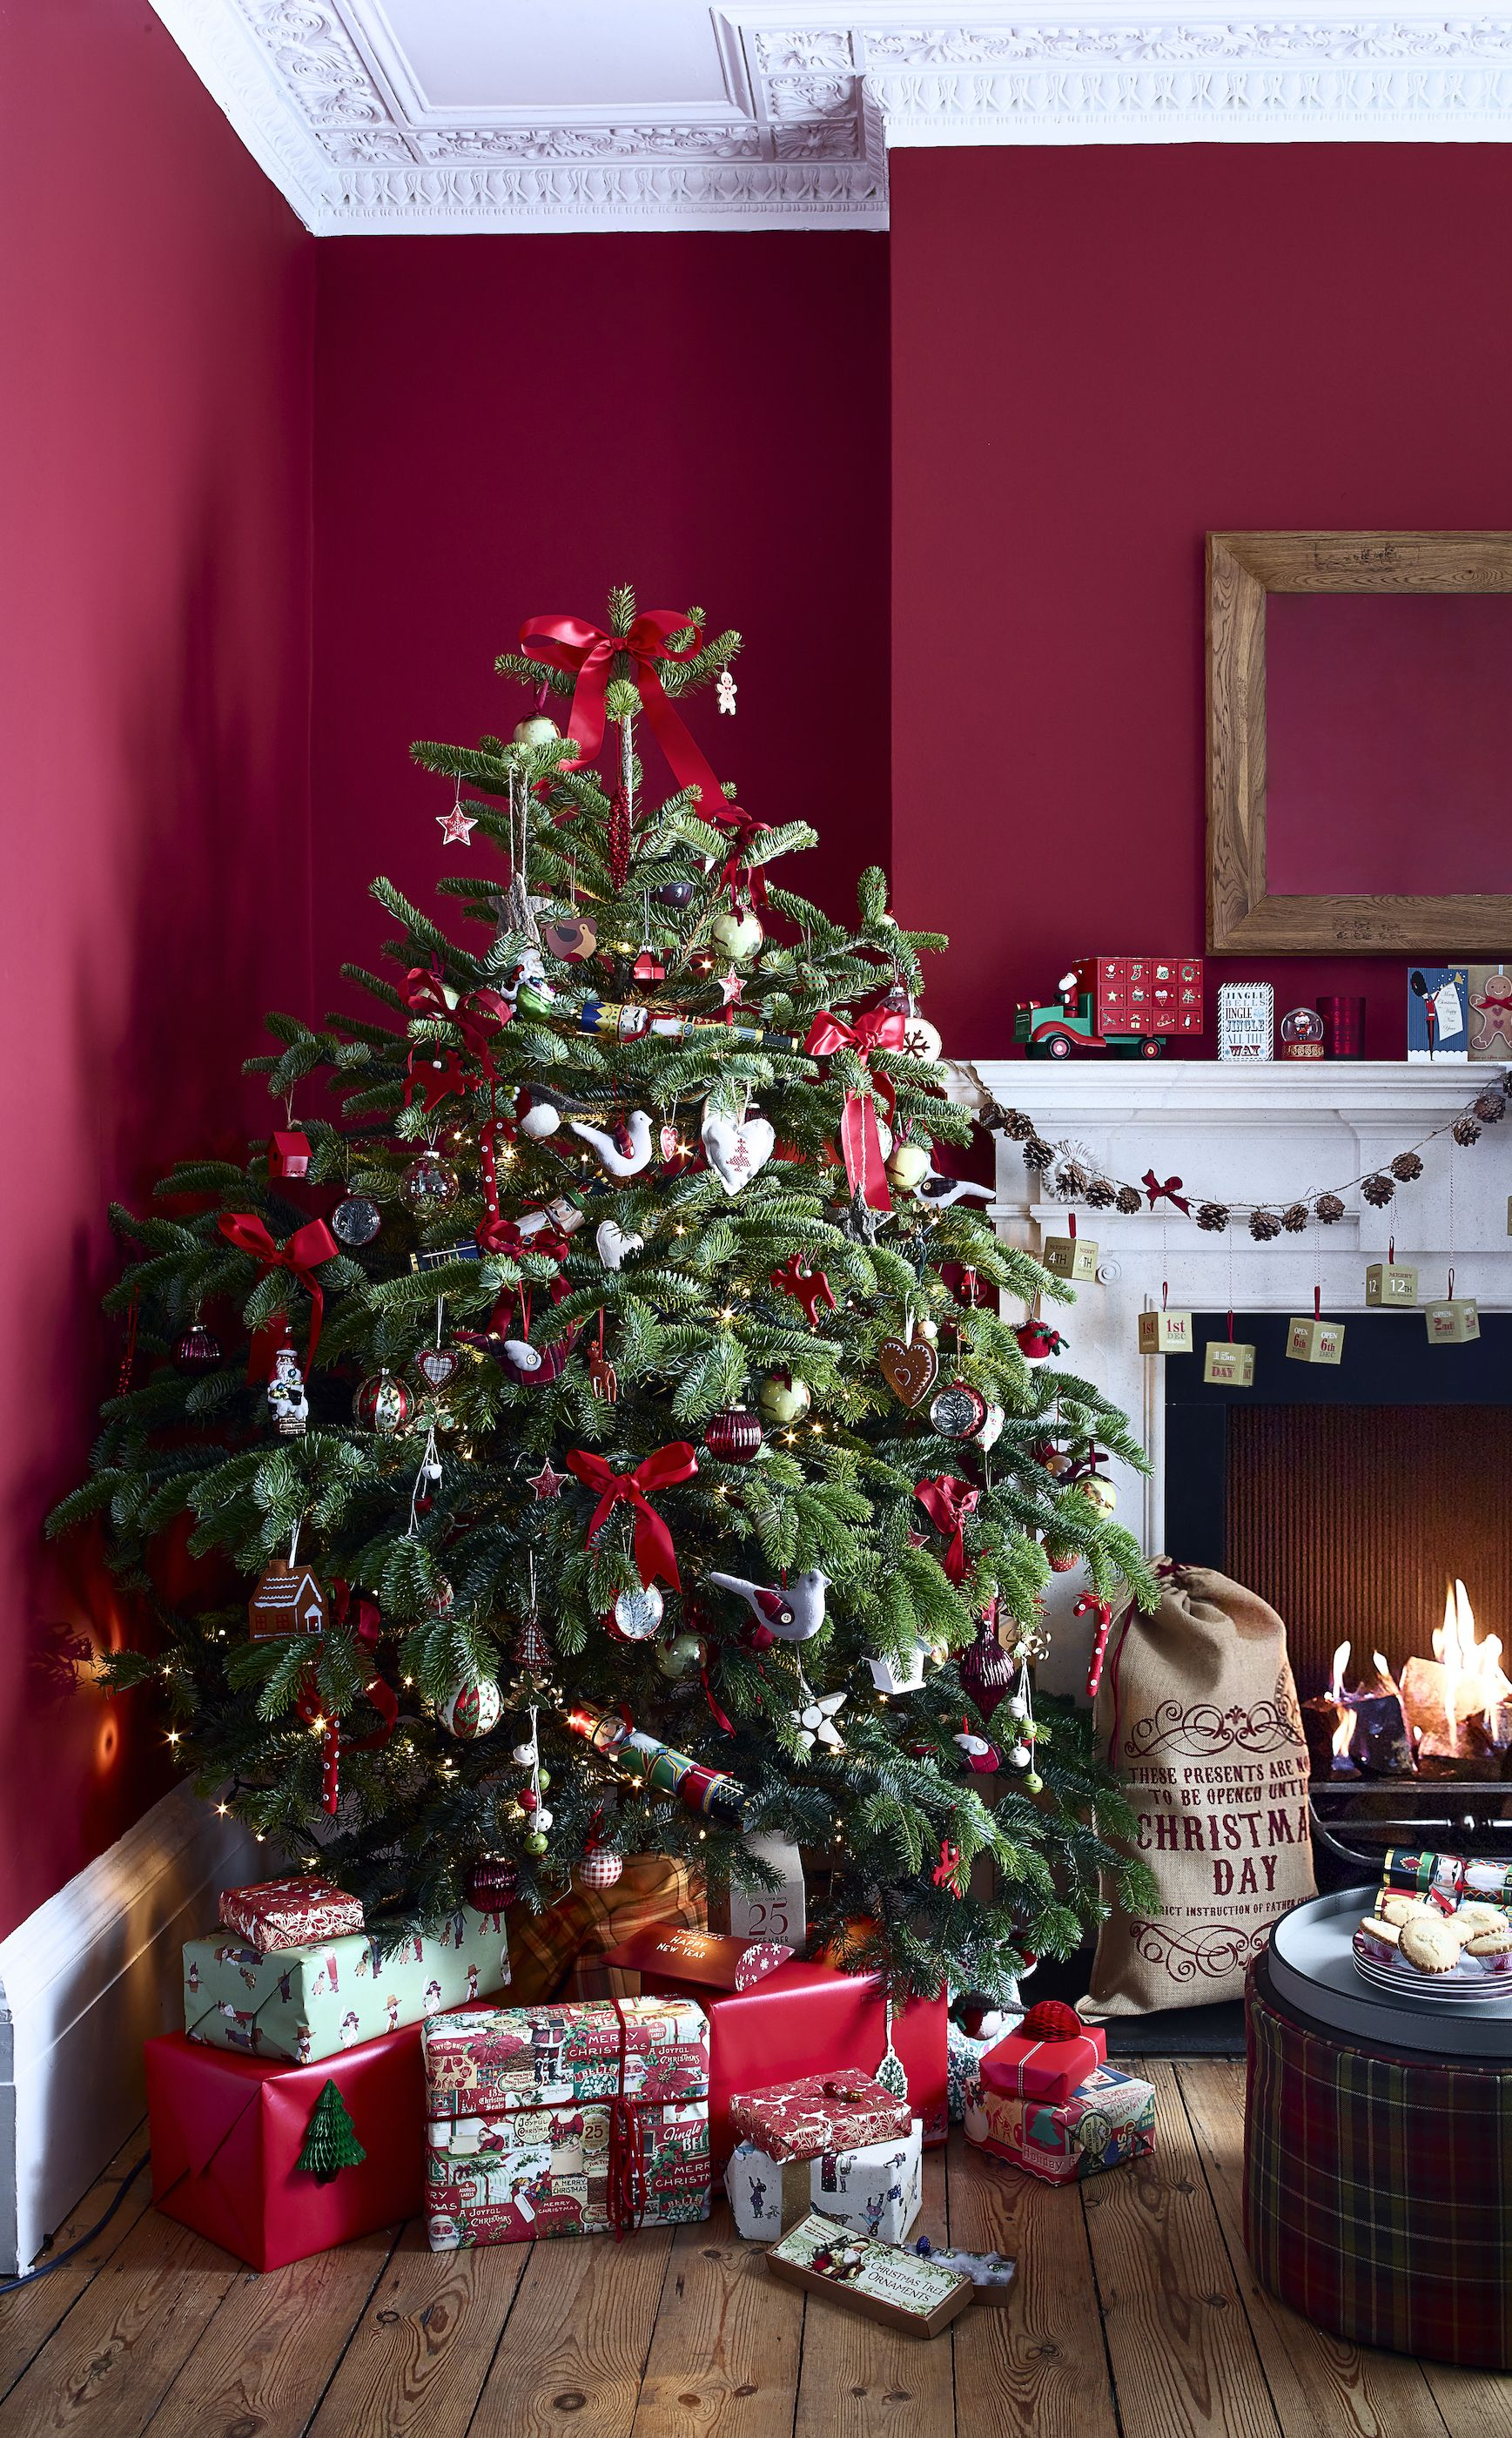 Keep your Christmas decorations up until February to spread cheer, says English Heritage